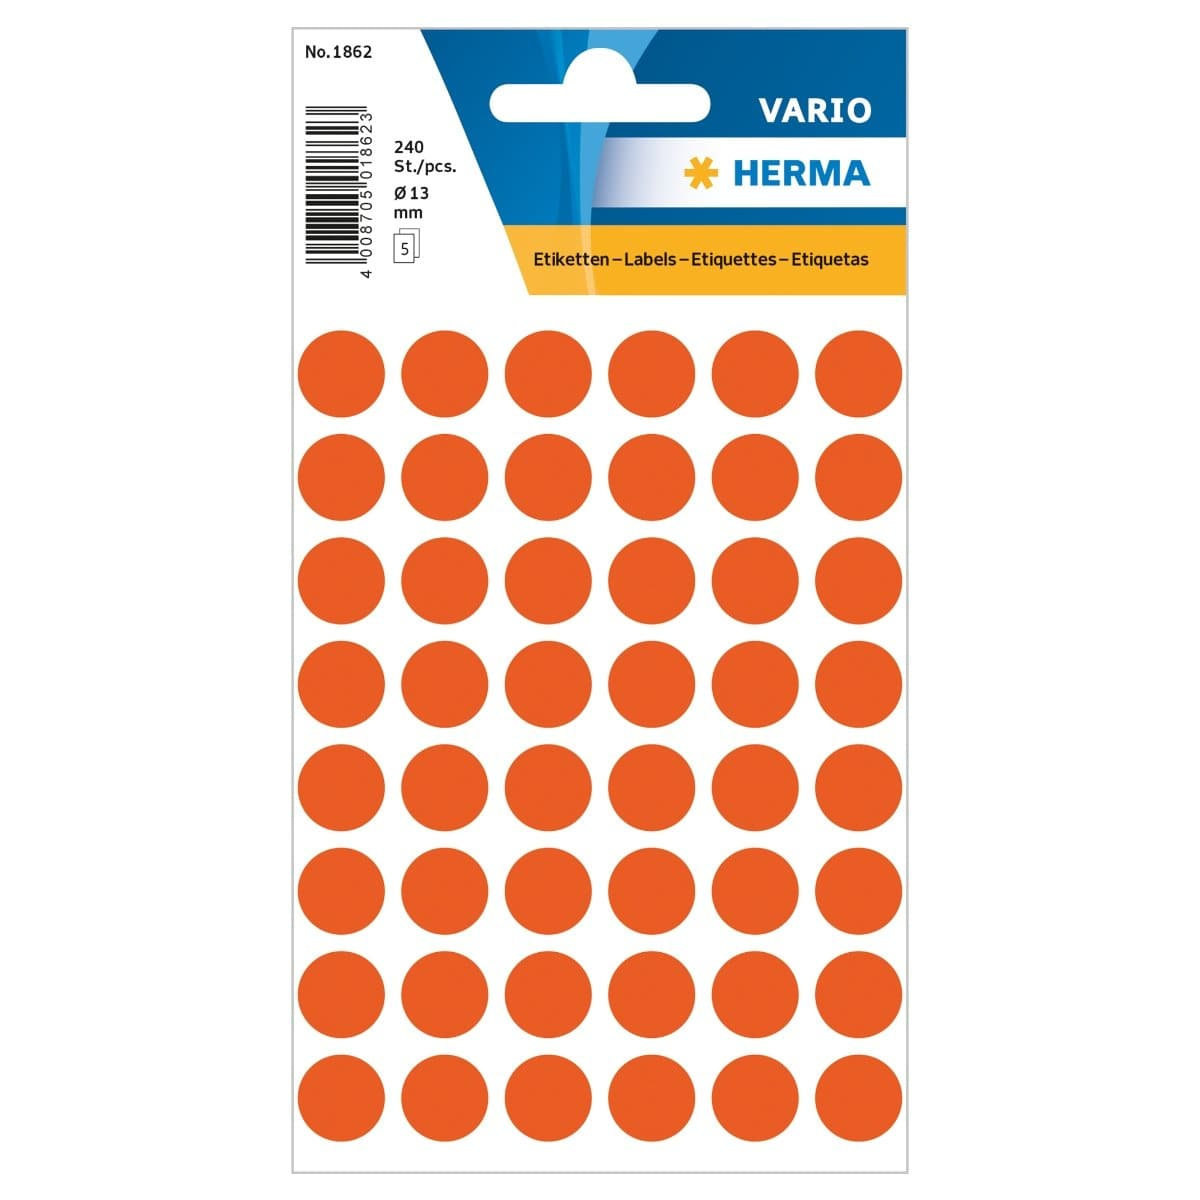 Herma Vario Sticker Color Dots, 13 mm, 240/pack, Red